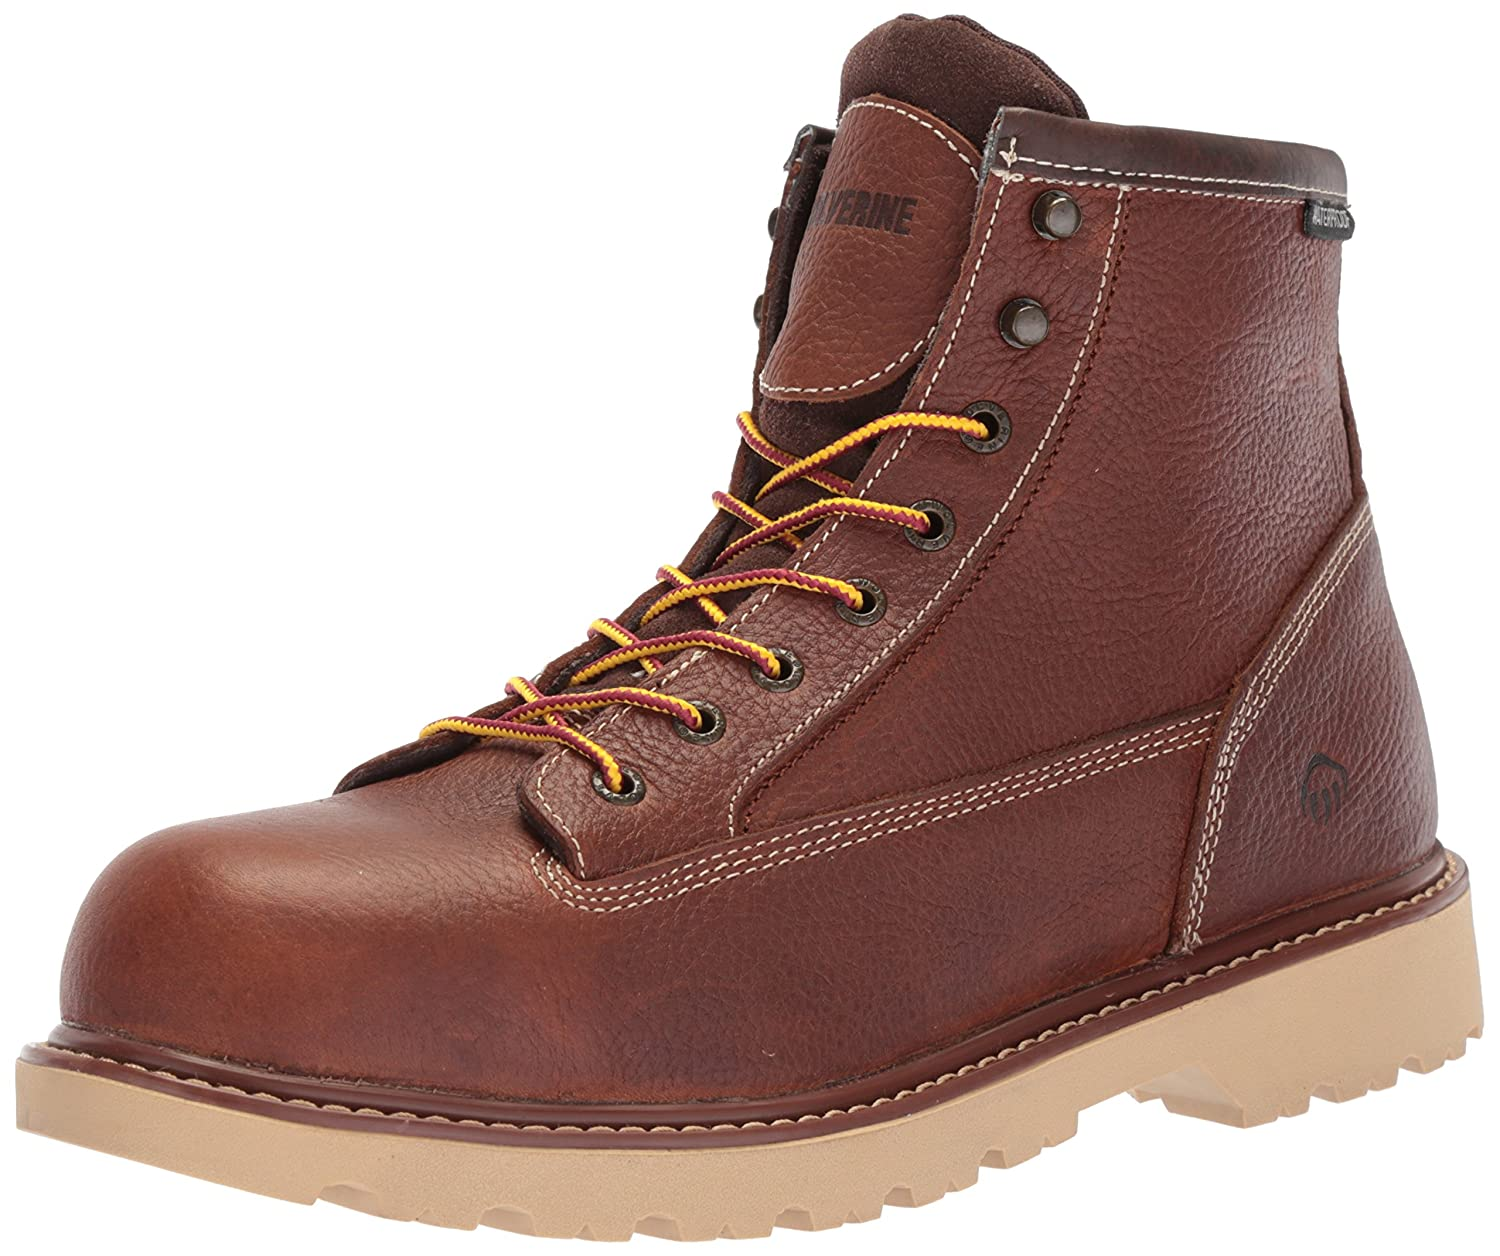 Wolverine メンズ Floorhand II Waterproof Steel-Toe 6